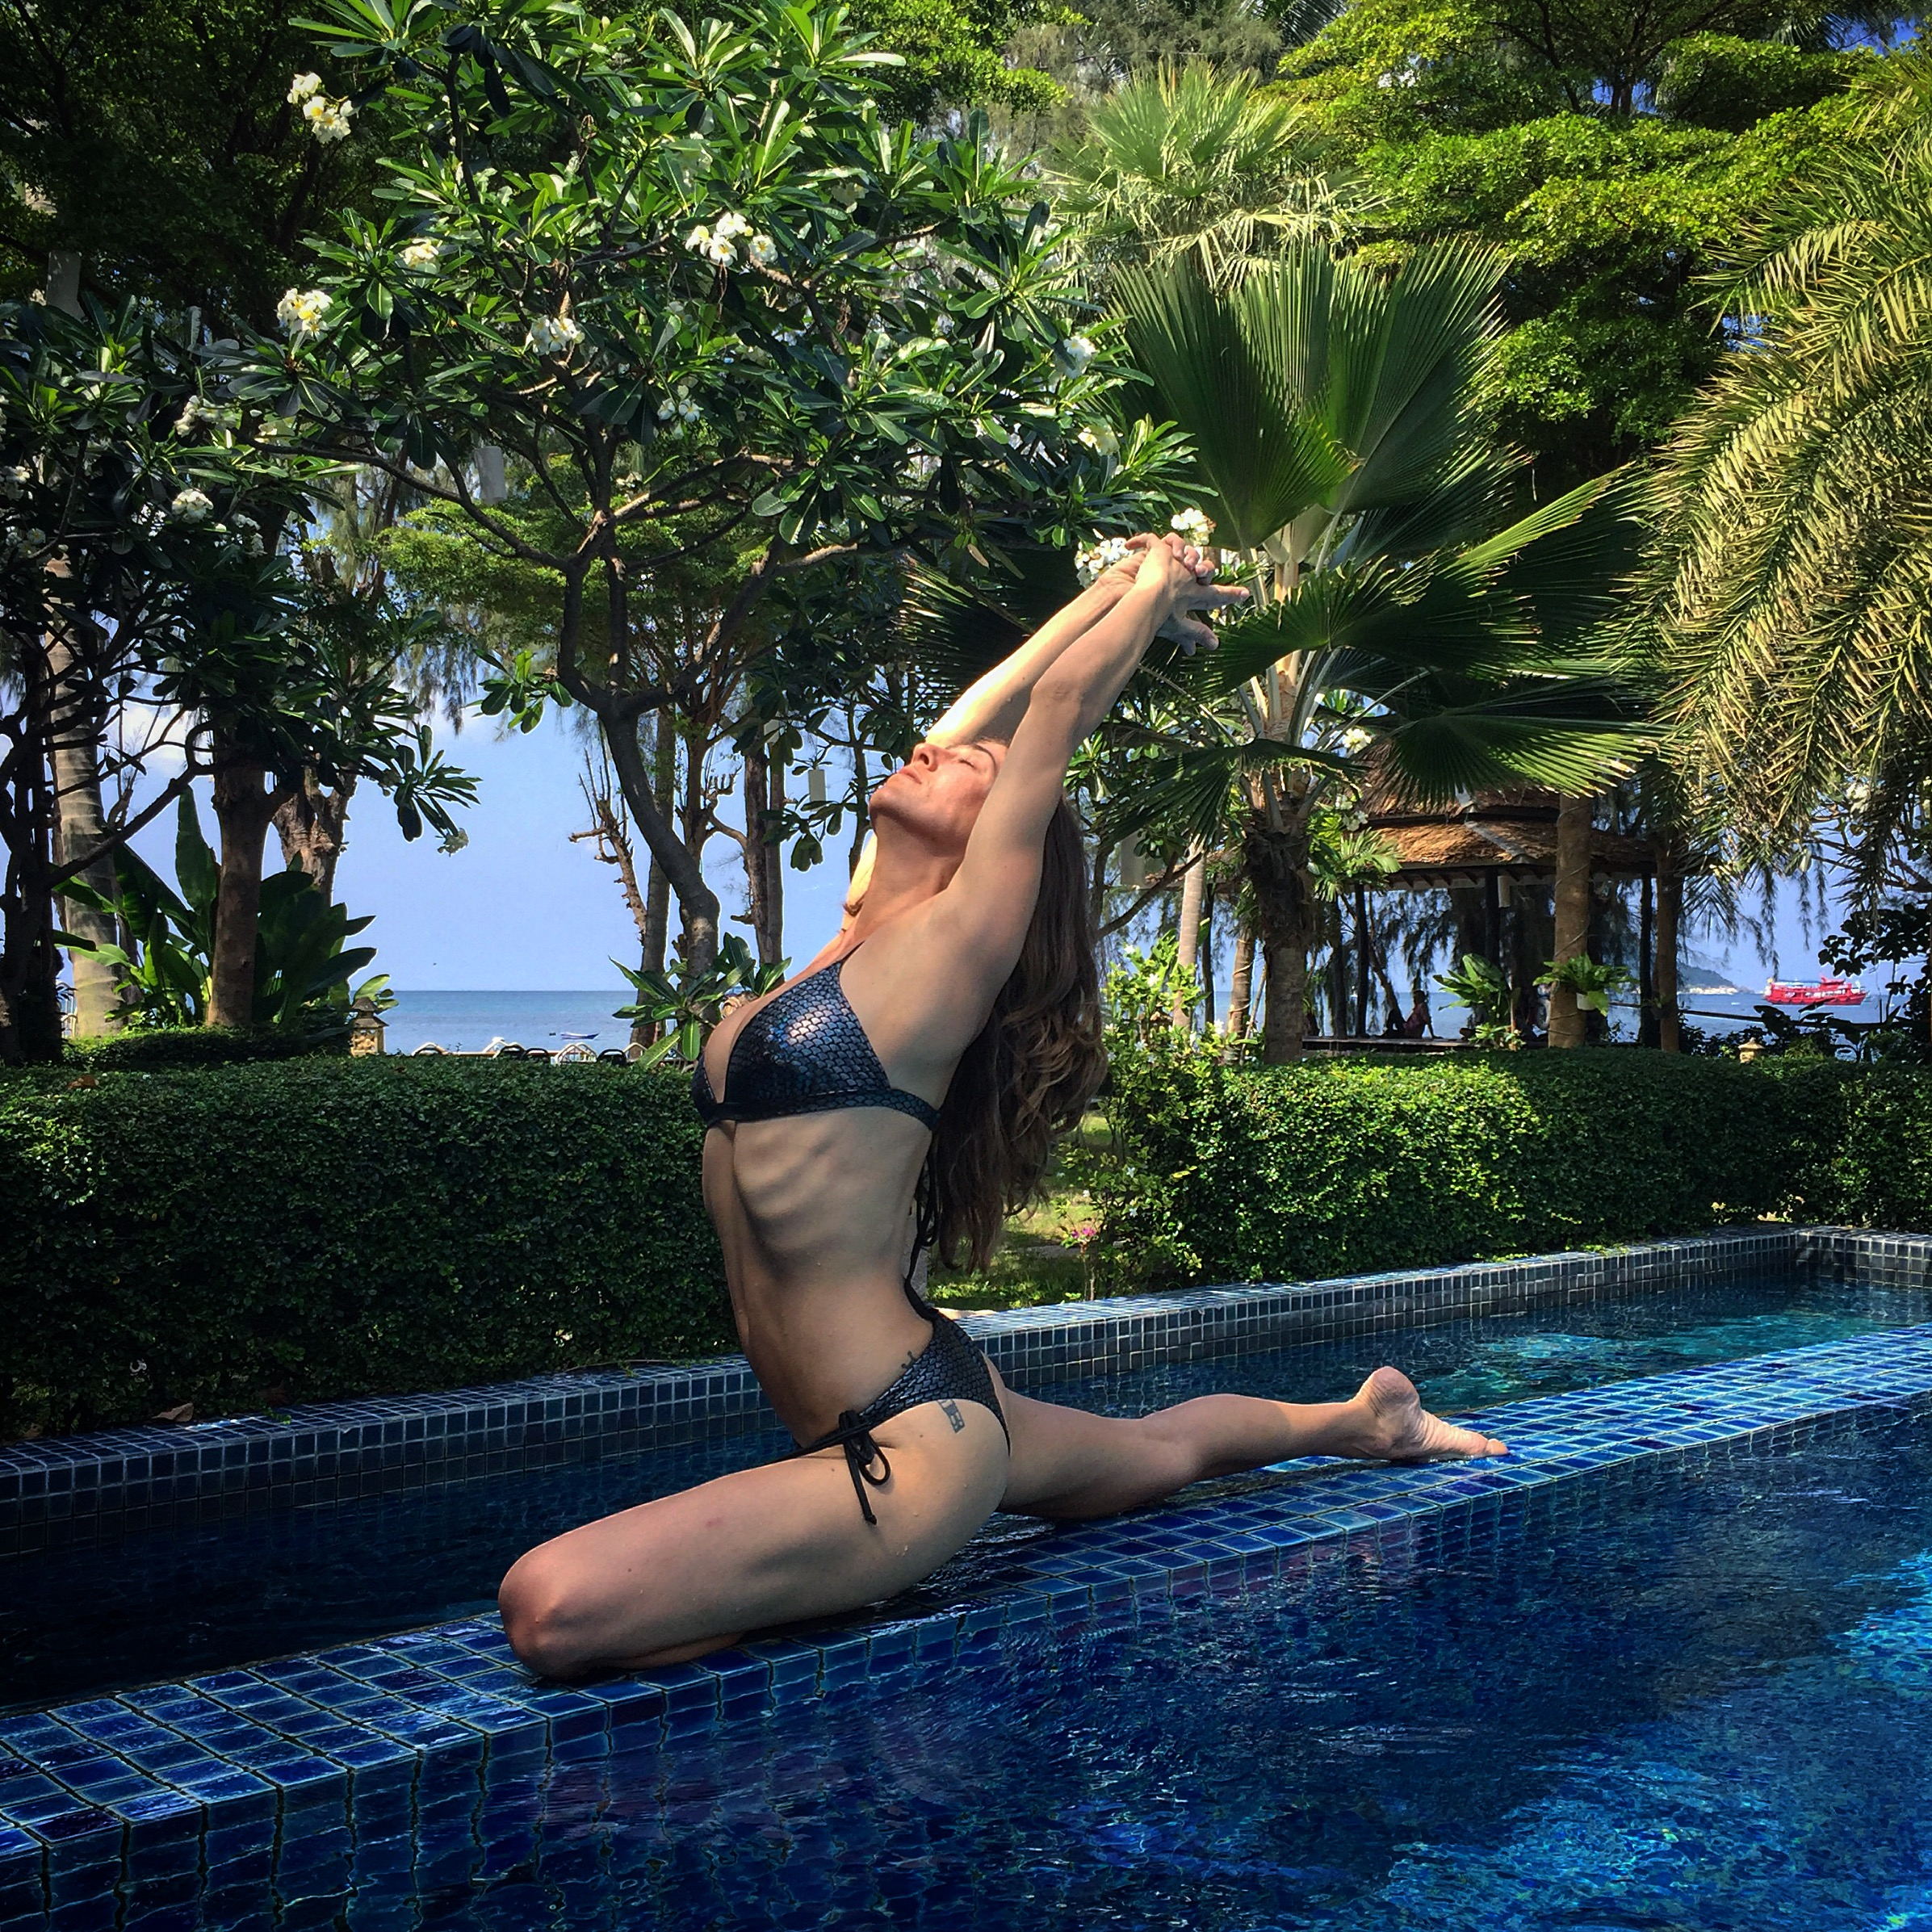 Practicing some yoga in the pool at Koh Tao Montra Resort.